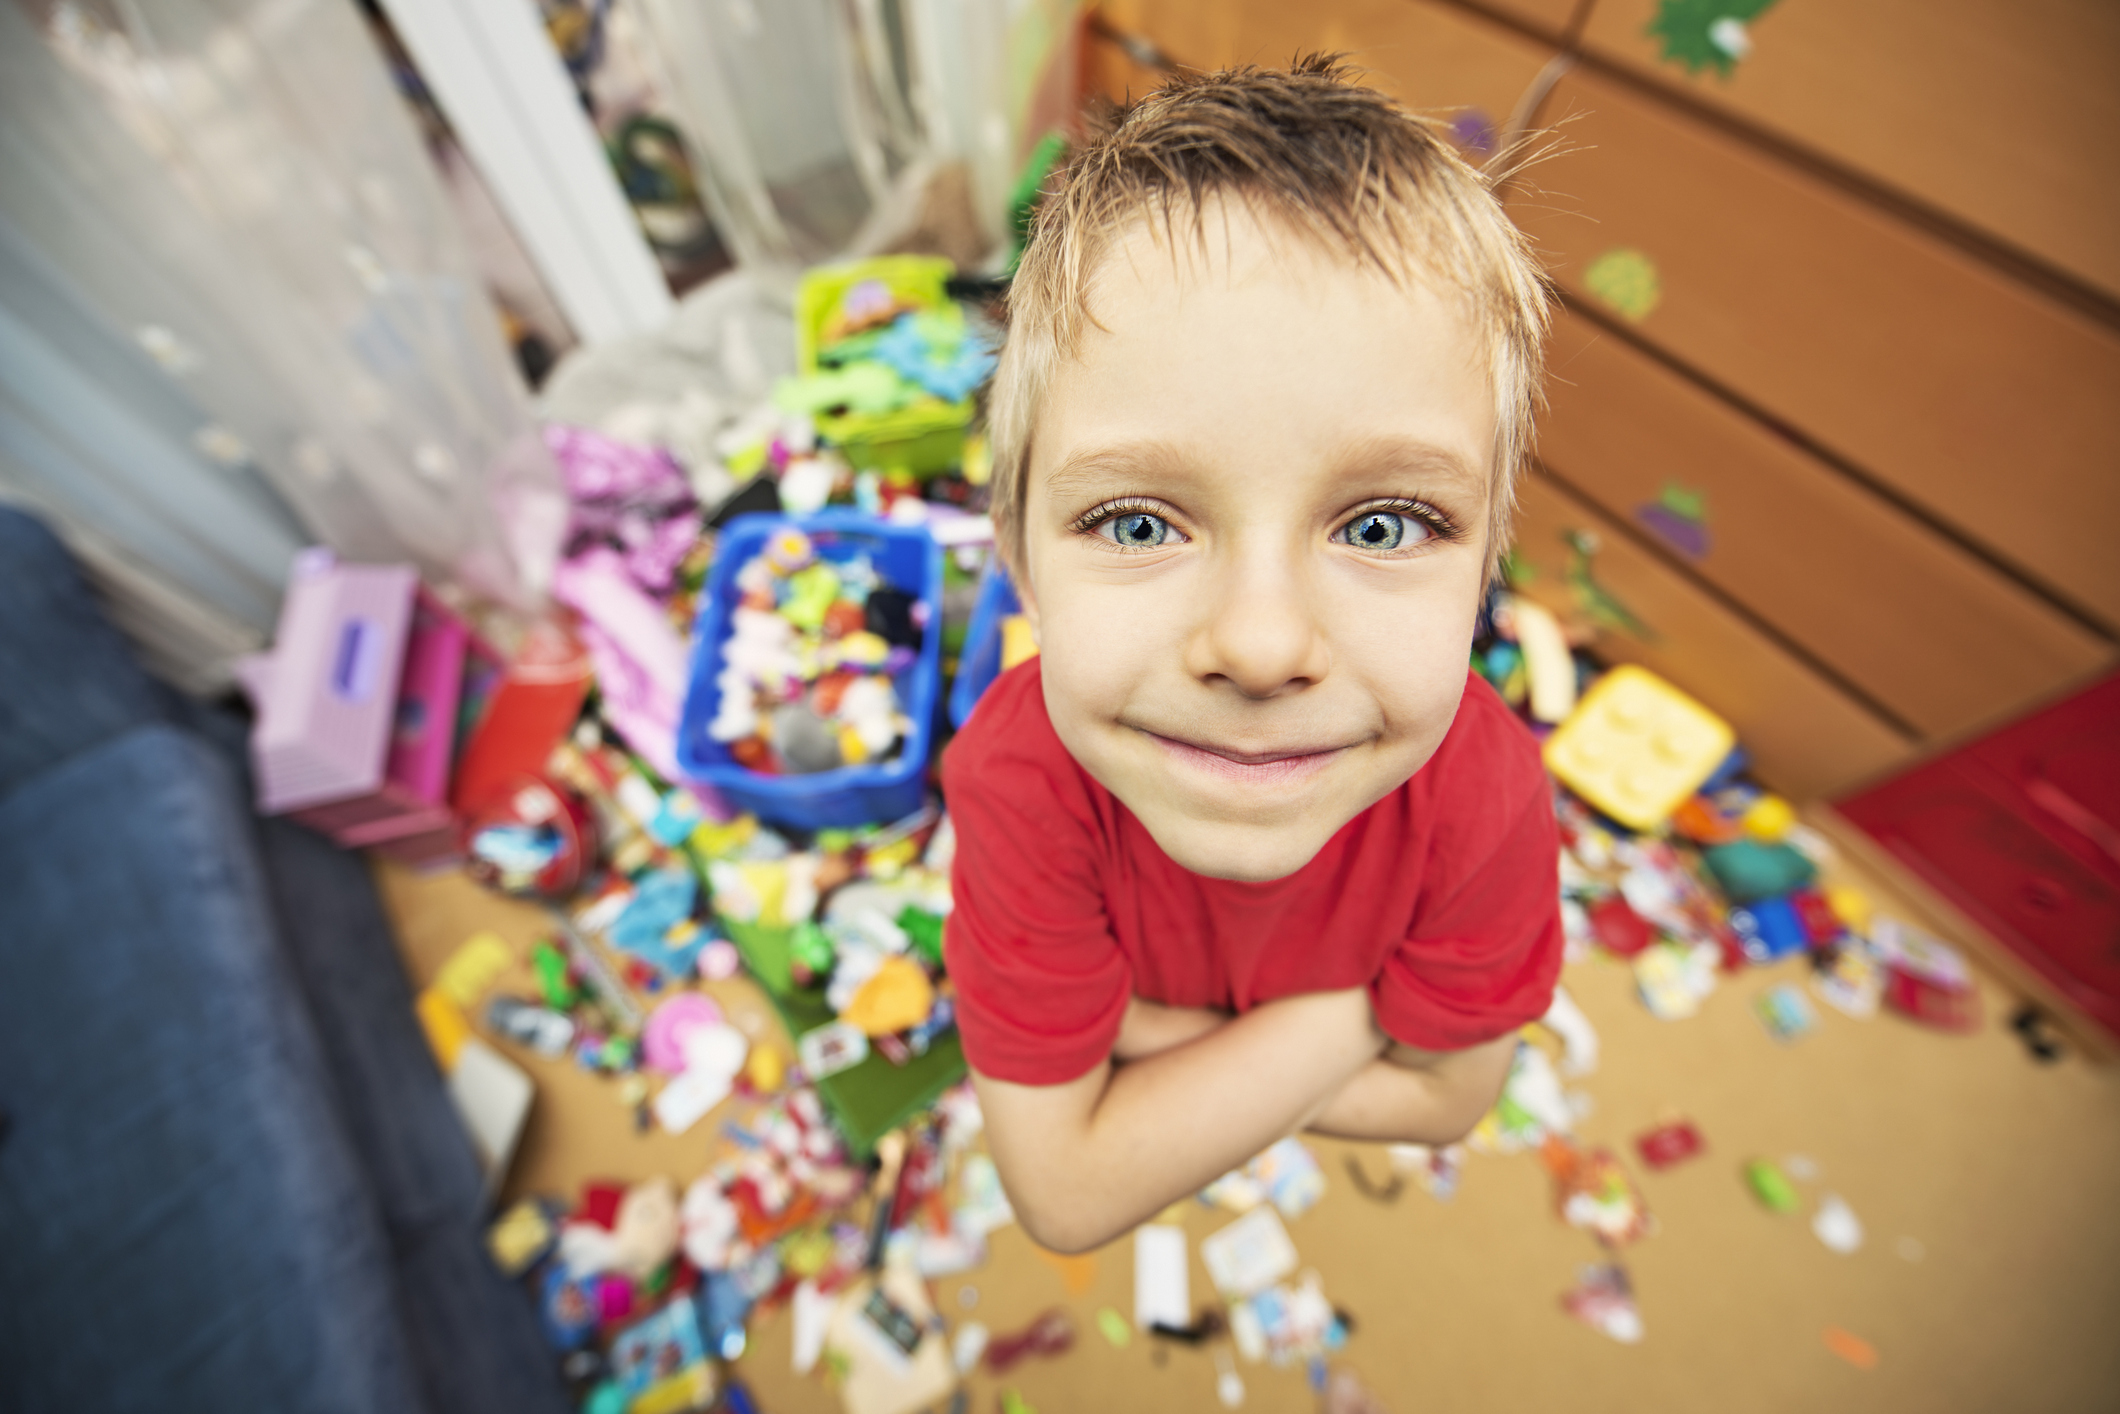 Kids clean their rooms, true story or urban myth?